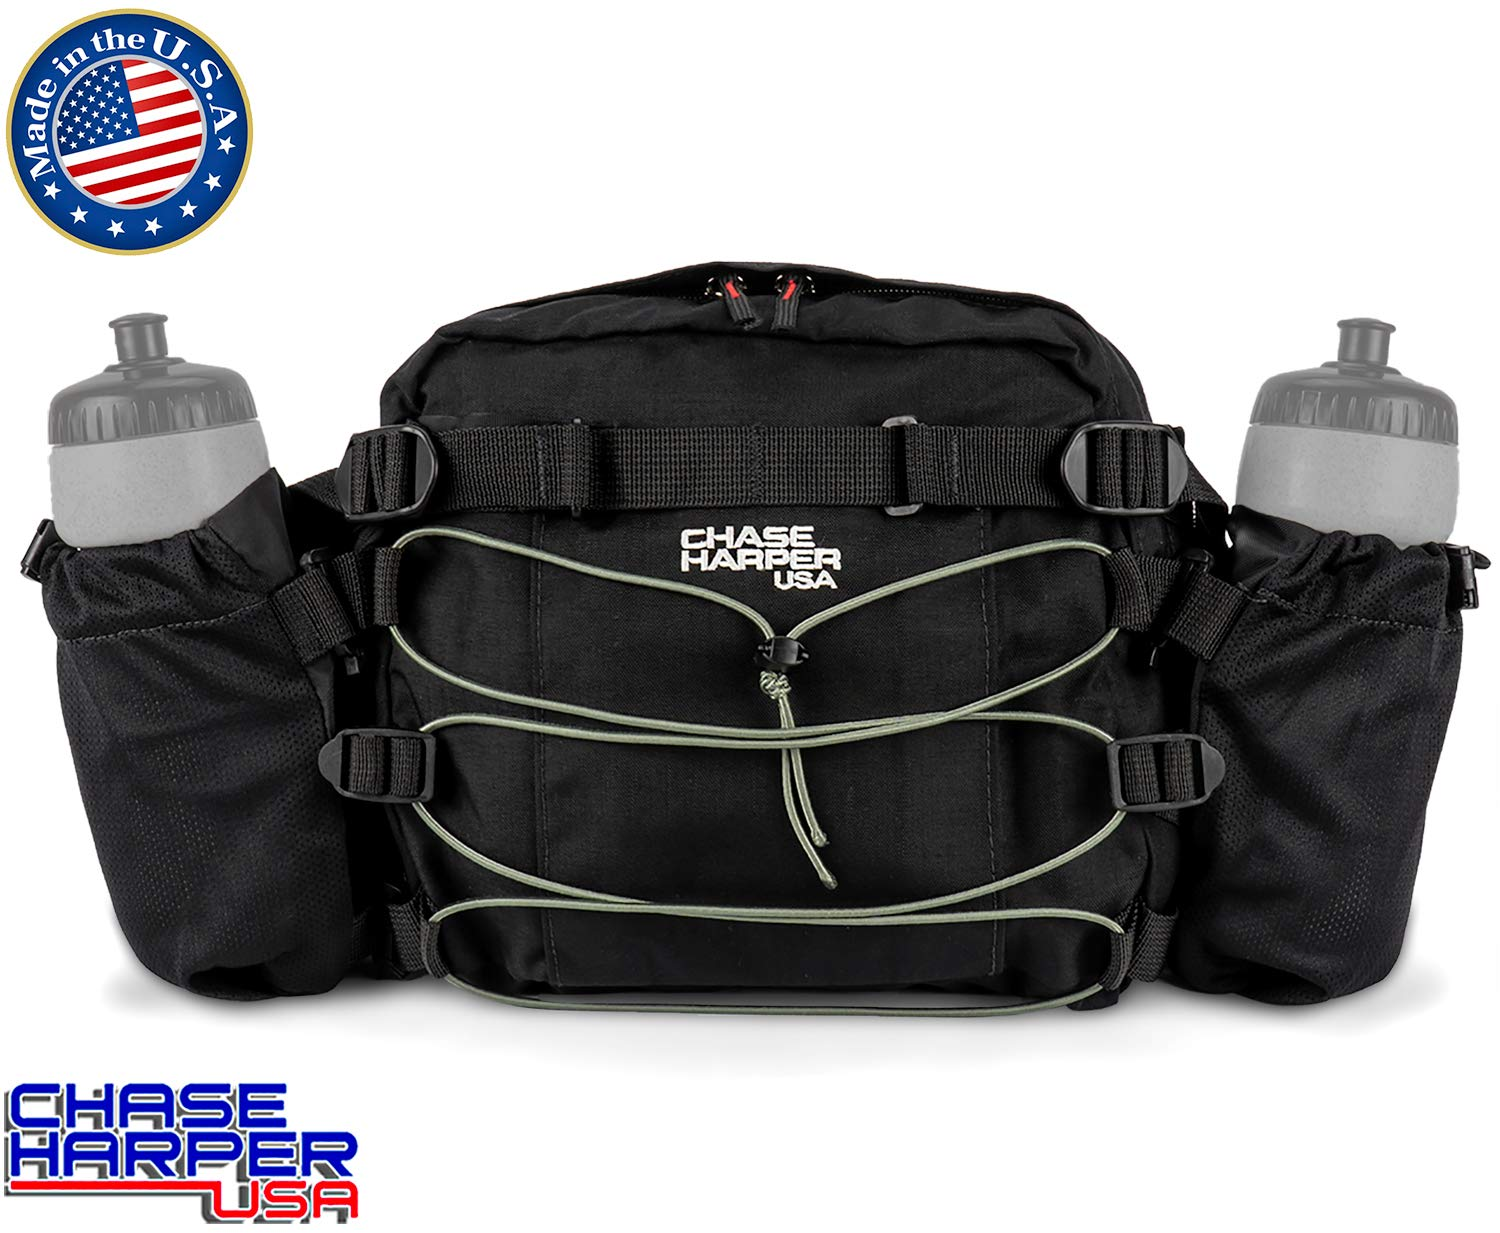 Chase Harper 9344 Sport Tour H2O Fanny Pack - Water-Resistant, Tear-Resistant, Industrial Grade Nylon by Chase Harper USA